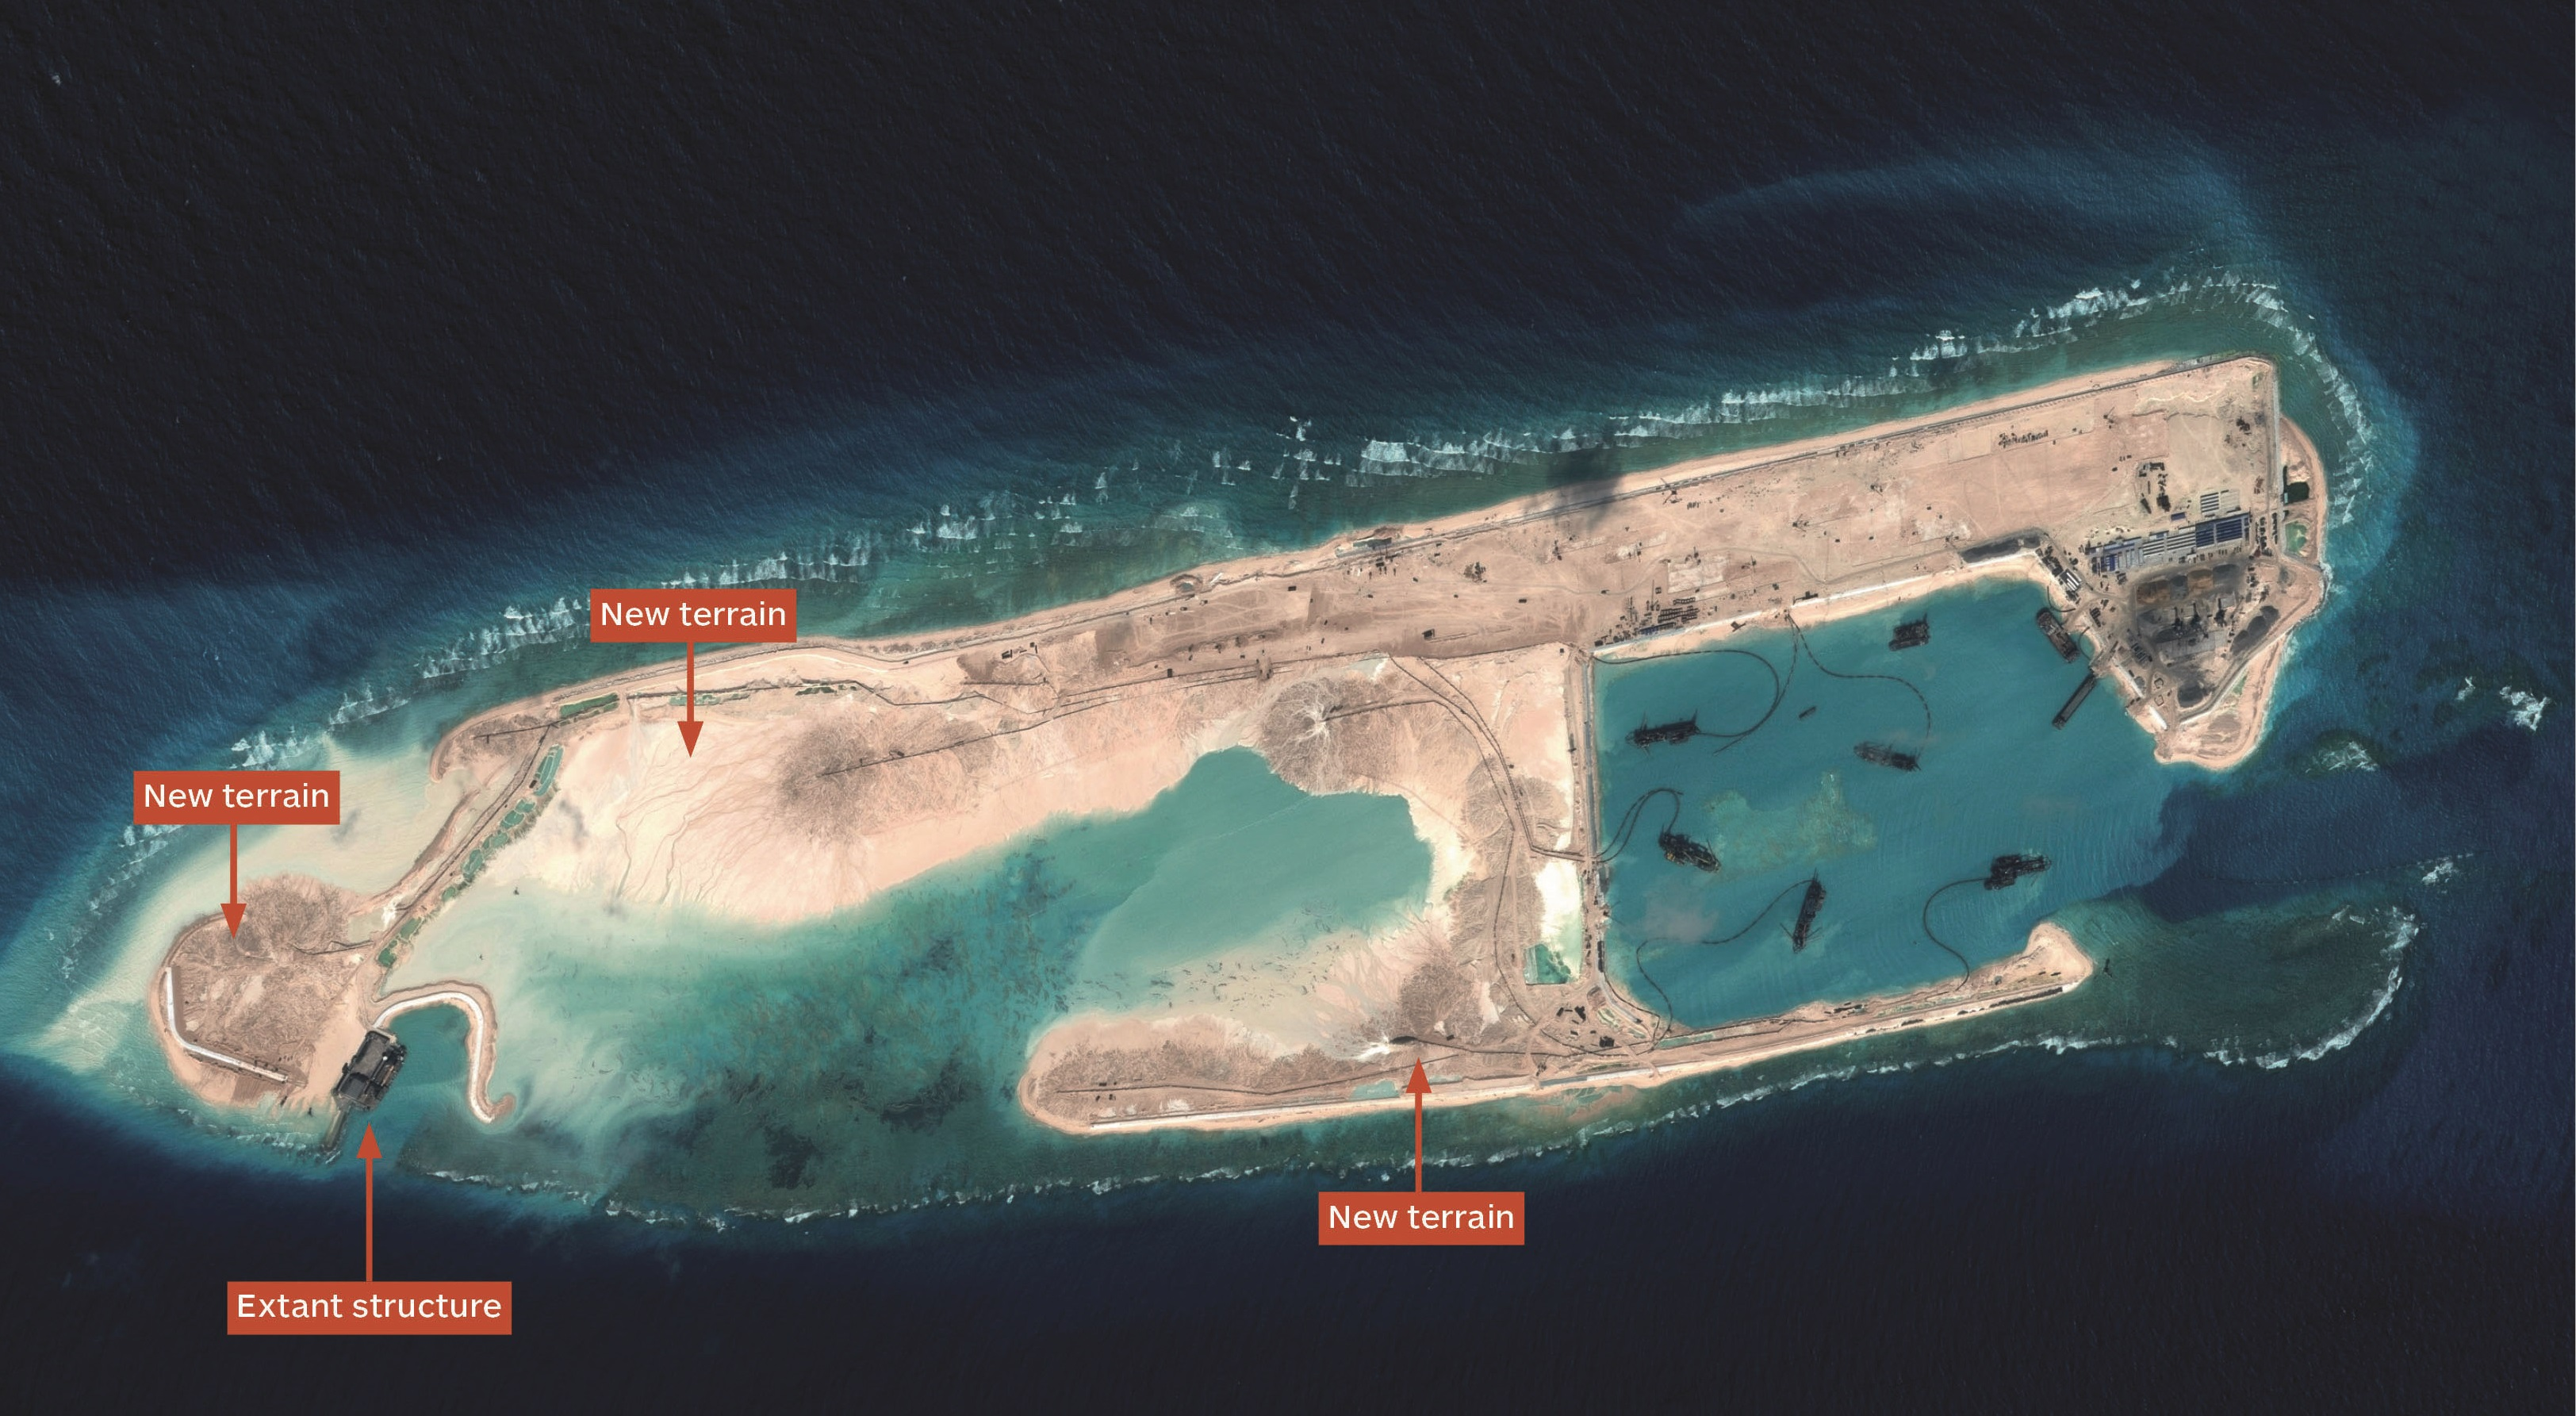 china is on a crazy mission to build artificial islands what the